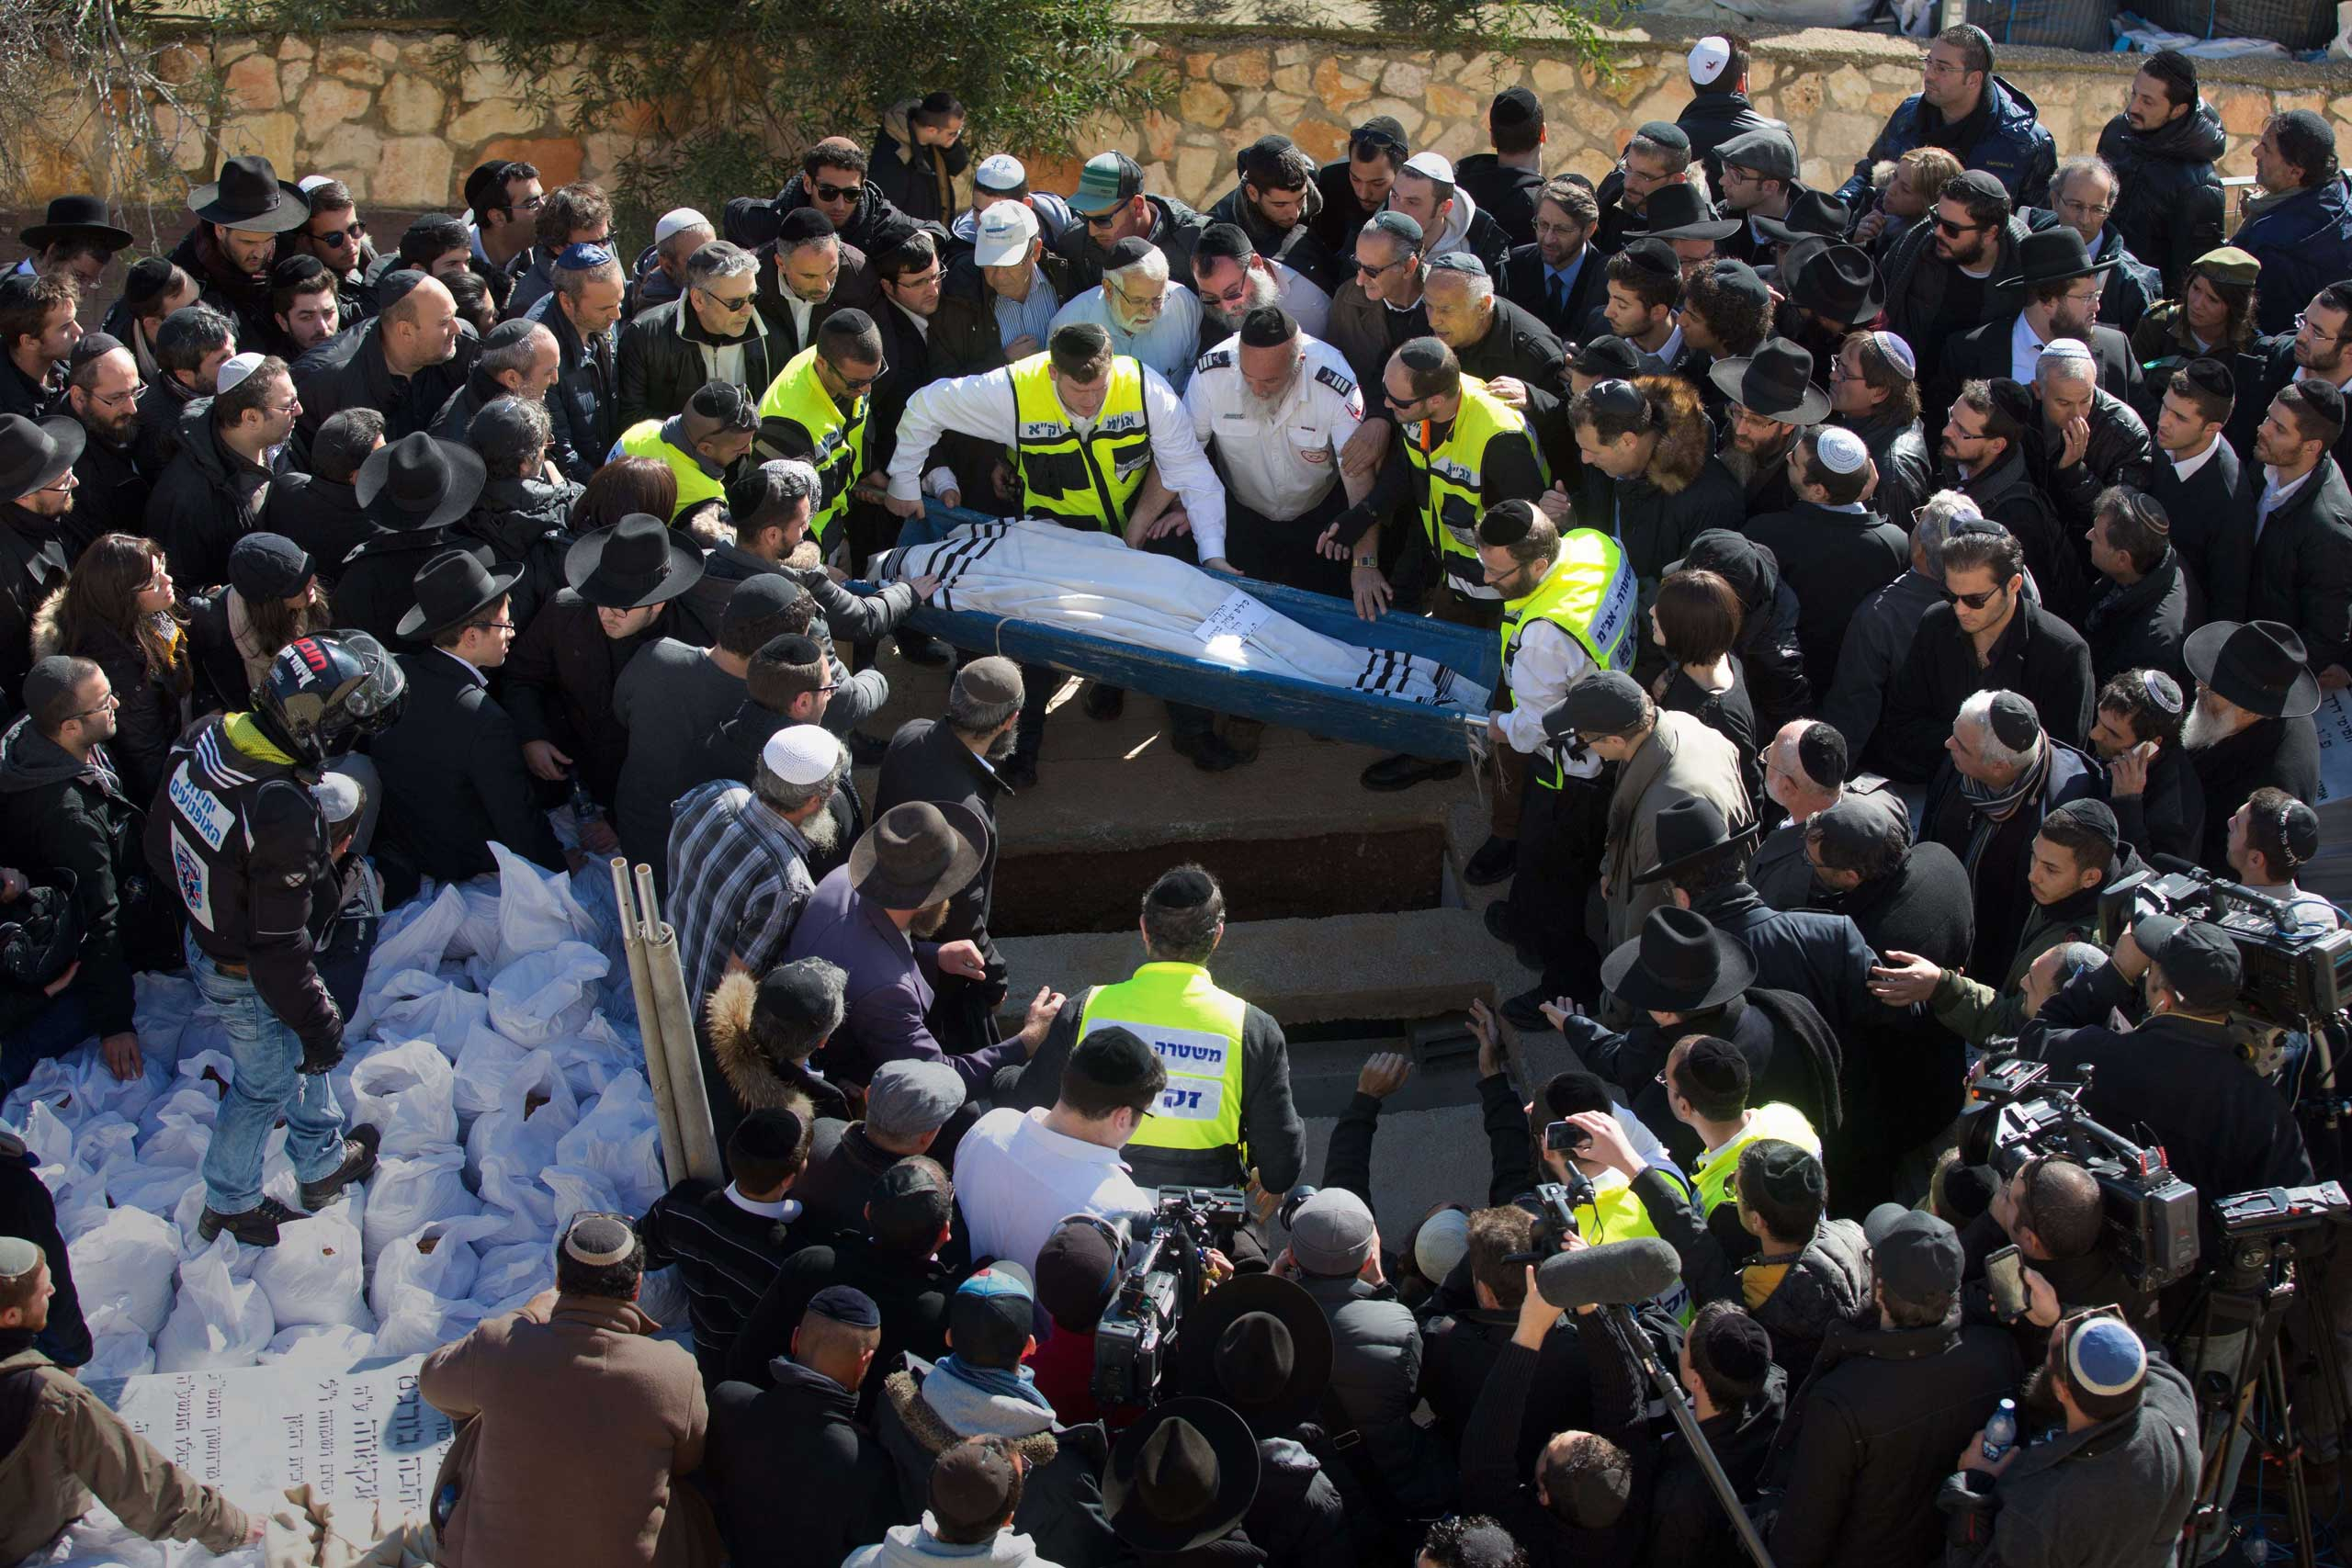 The body of a victim of last week's terror attacks in France is carried ahead of burial at a cemetery in Jerusalem on Jan. 13, 2015.